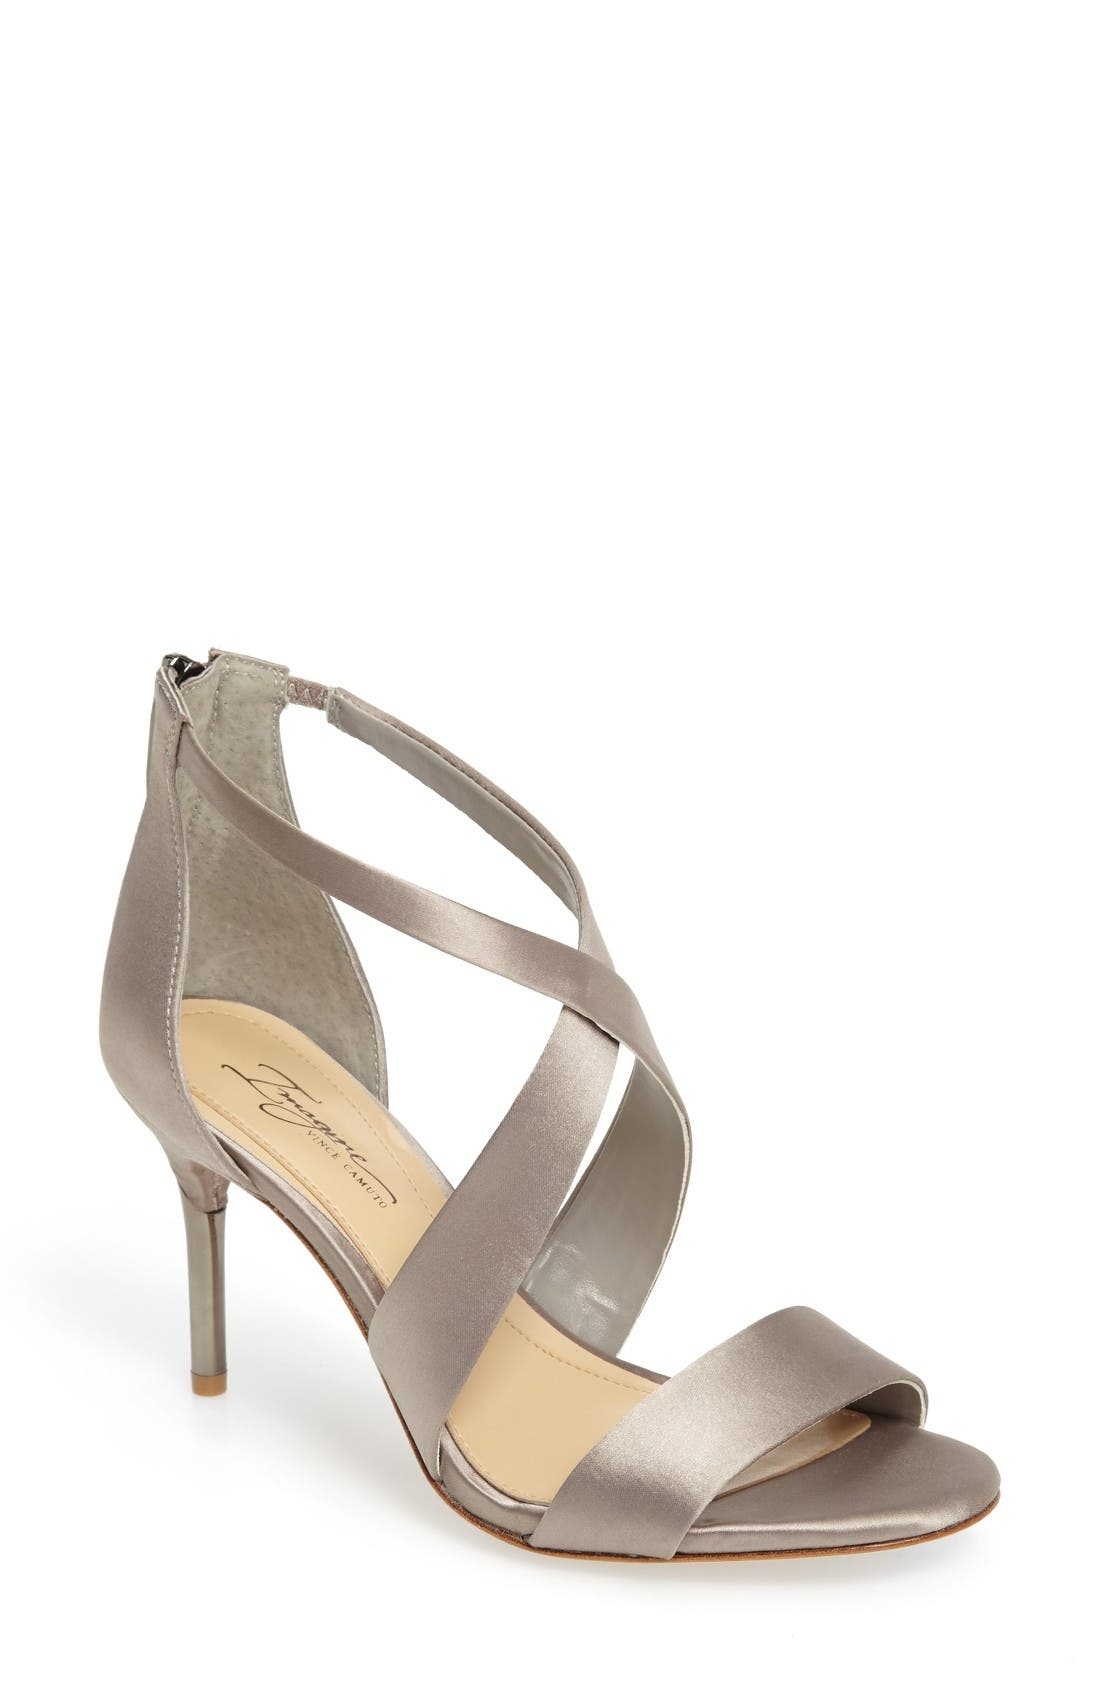 Main Image - Imagine by Vince Camuto 'Pascal' Sandal (Women)